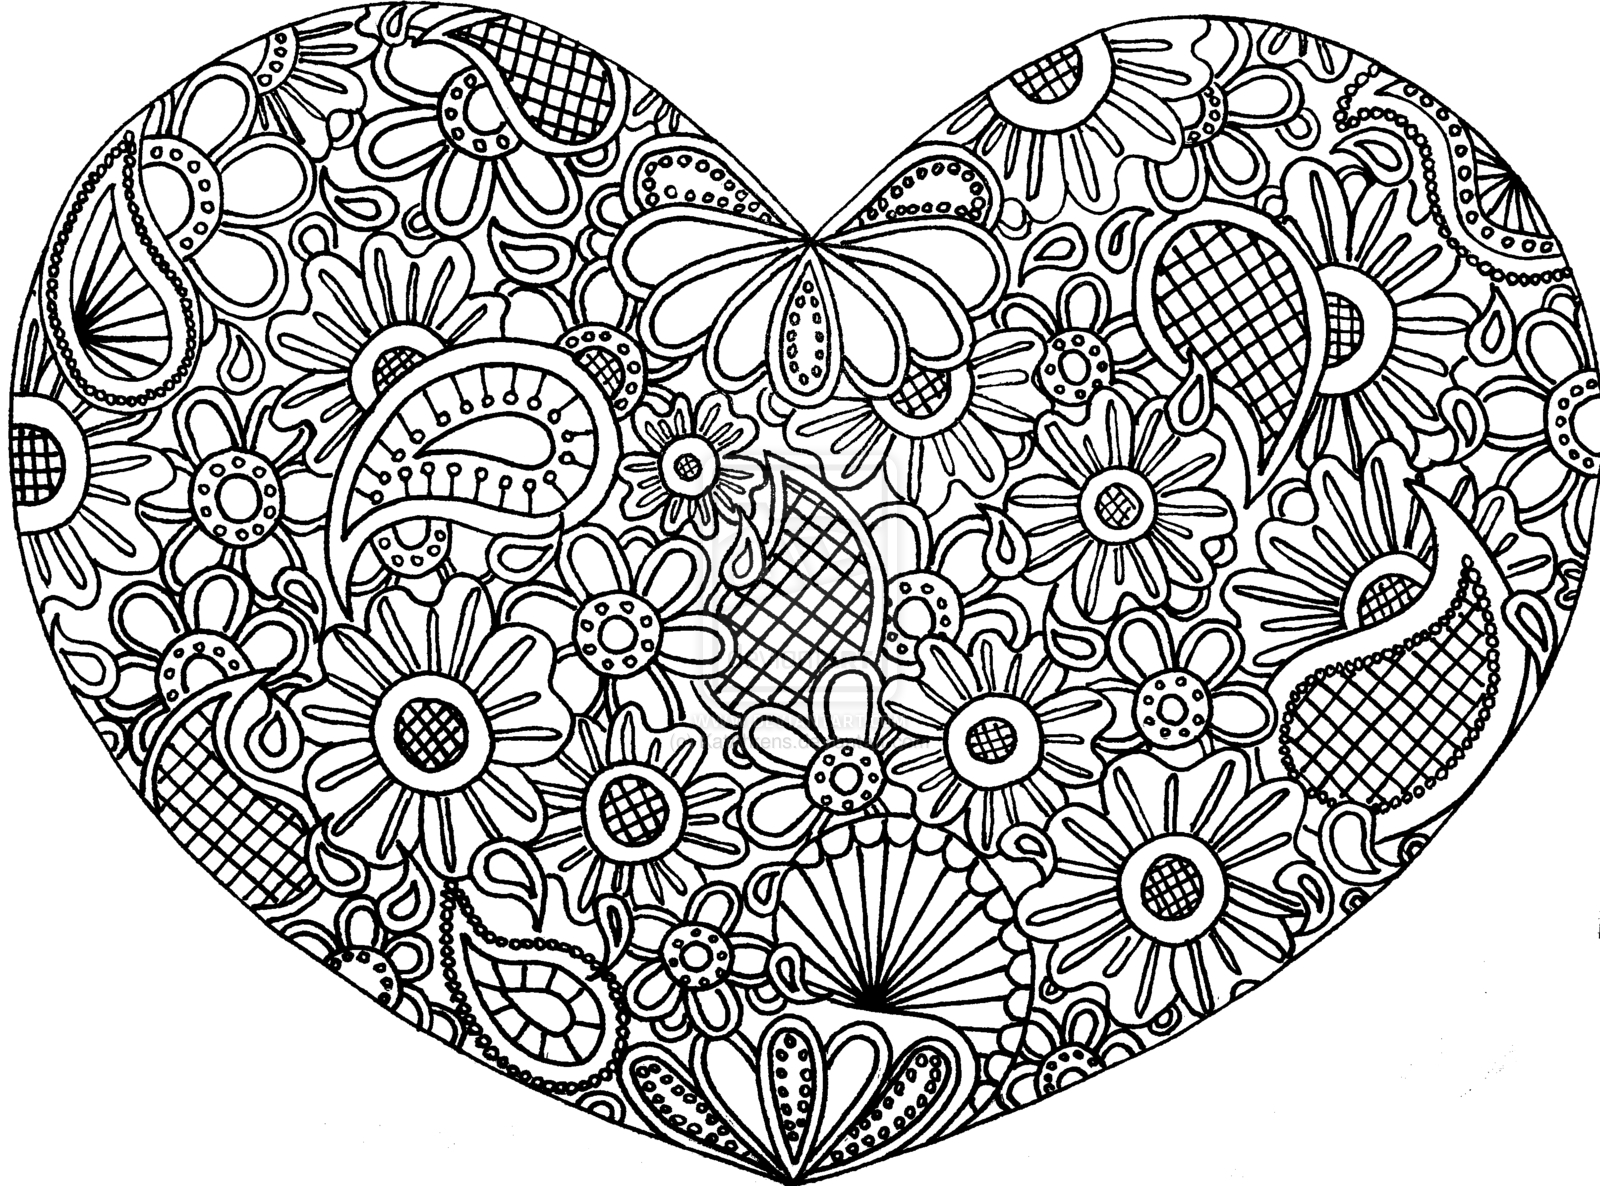 Doodle Art Coloring Pages Doodle Art Alley Quotes Coloring Pages Free Printable Lets With